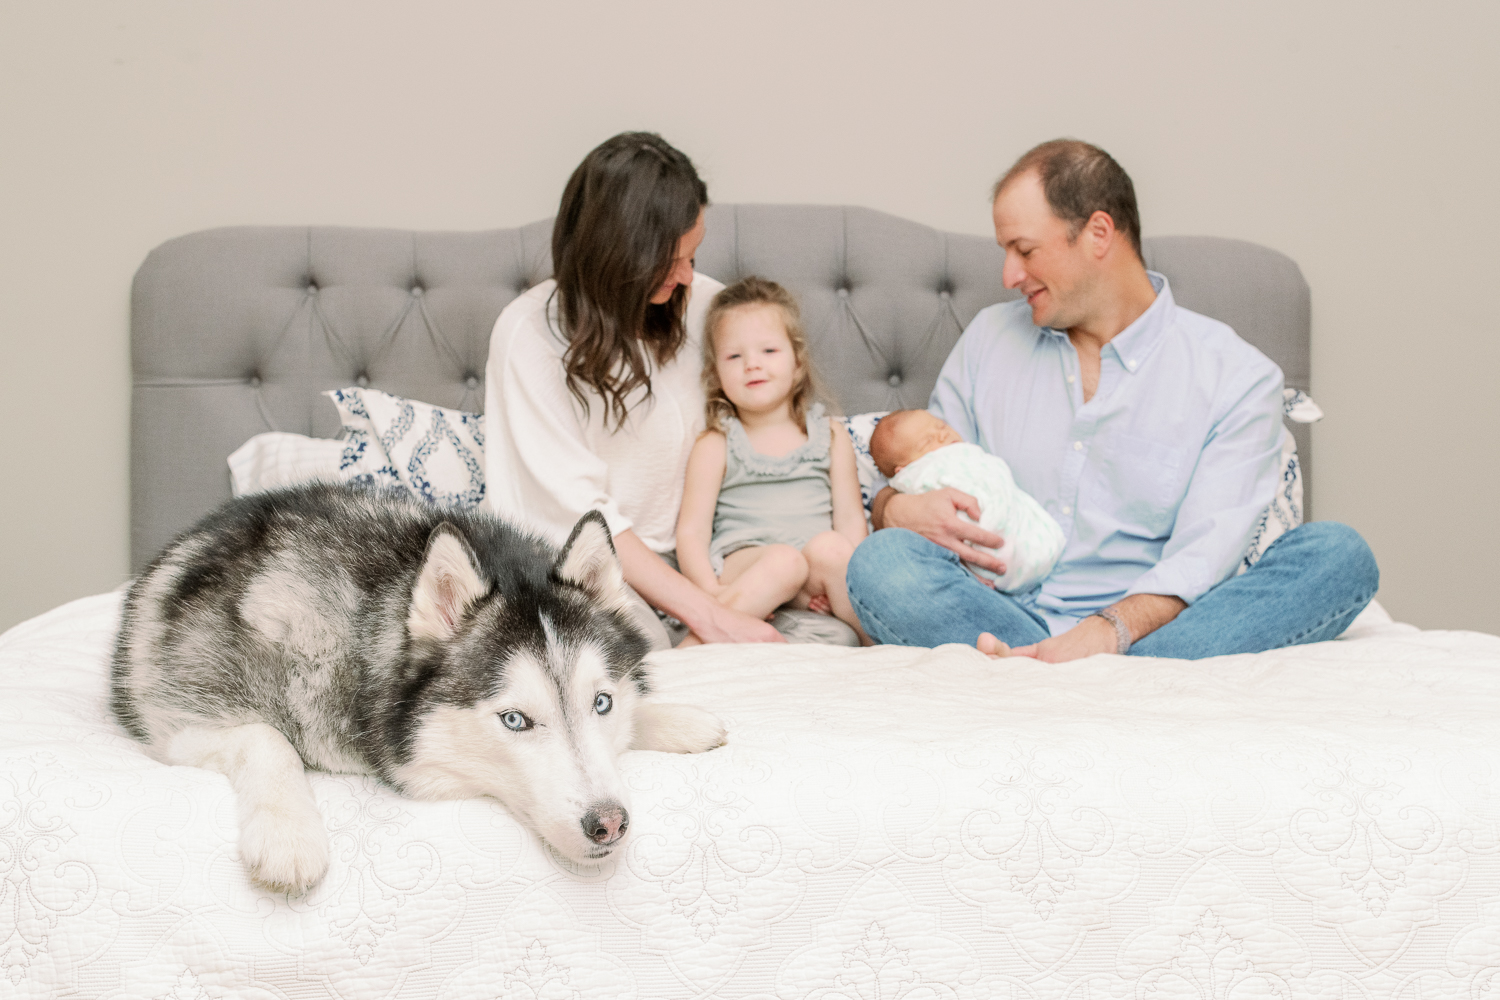 Chicago Naples Newborn Family Photographer – Lifestyle Newborn Photos-4